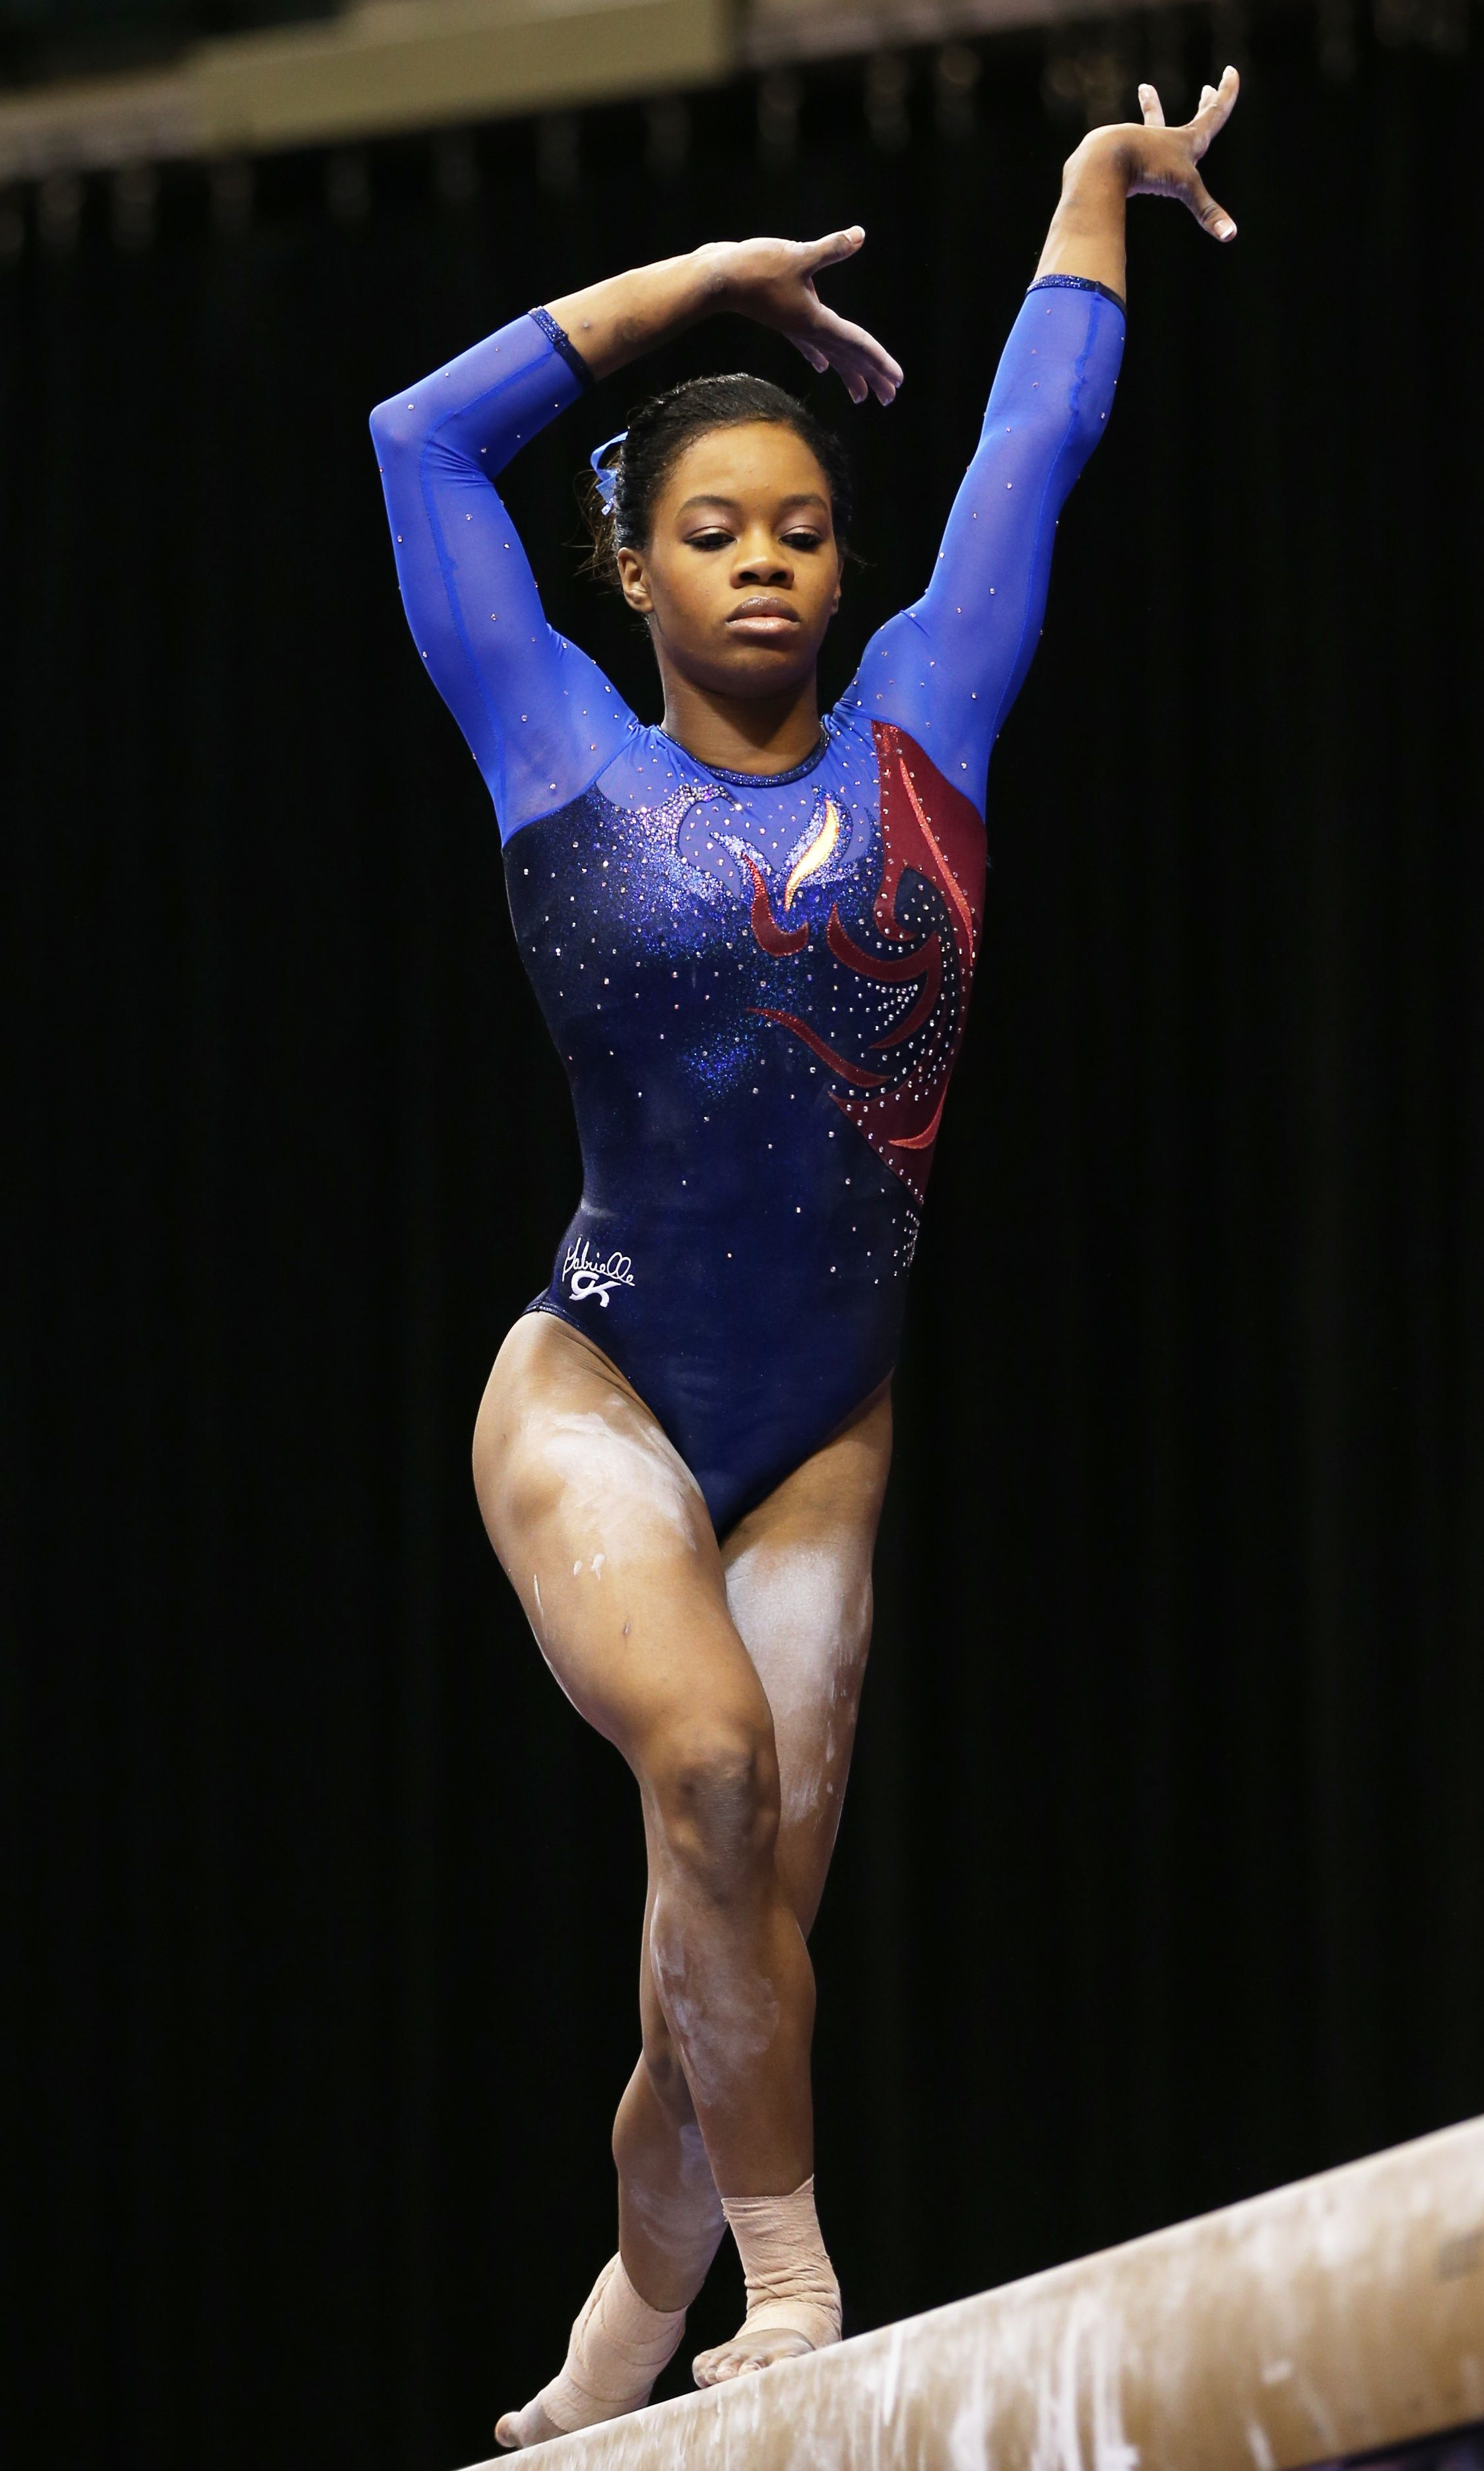 Gabby douglas plue and purple competitive gymnastics leotards as gabby douglas plue and purple competitive gymnastics leotards as seen at the 2015 us championship m4hsunfo